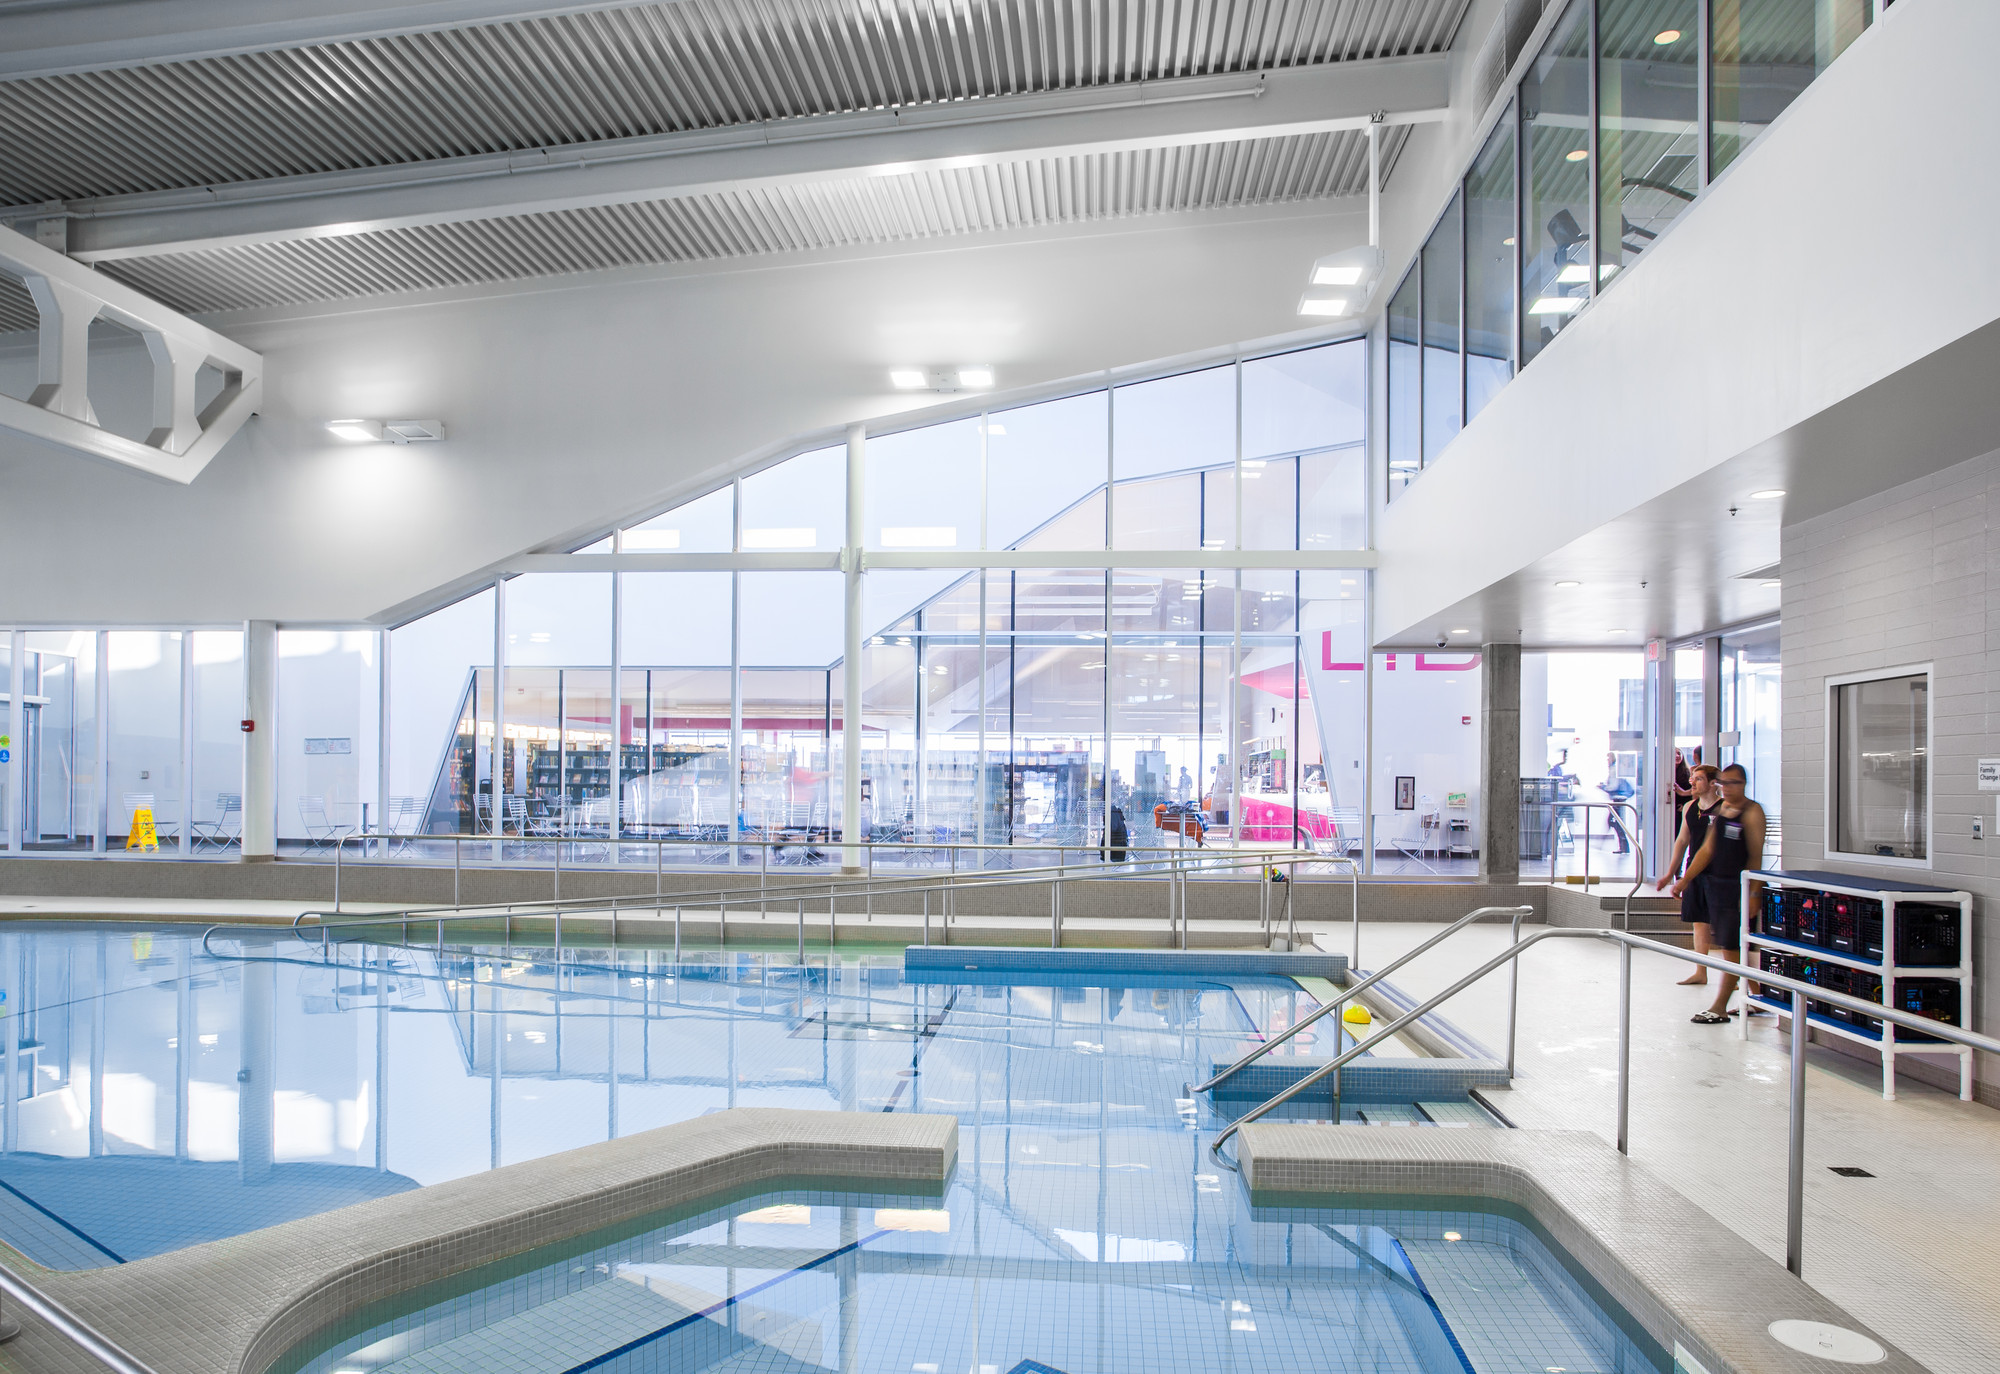 John m harper branch library stork family ymca teeple architects archdaily for Waterloo rec centre swimming pool